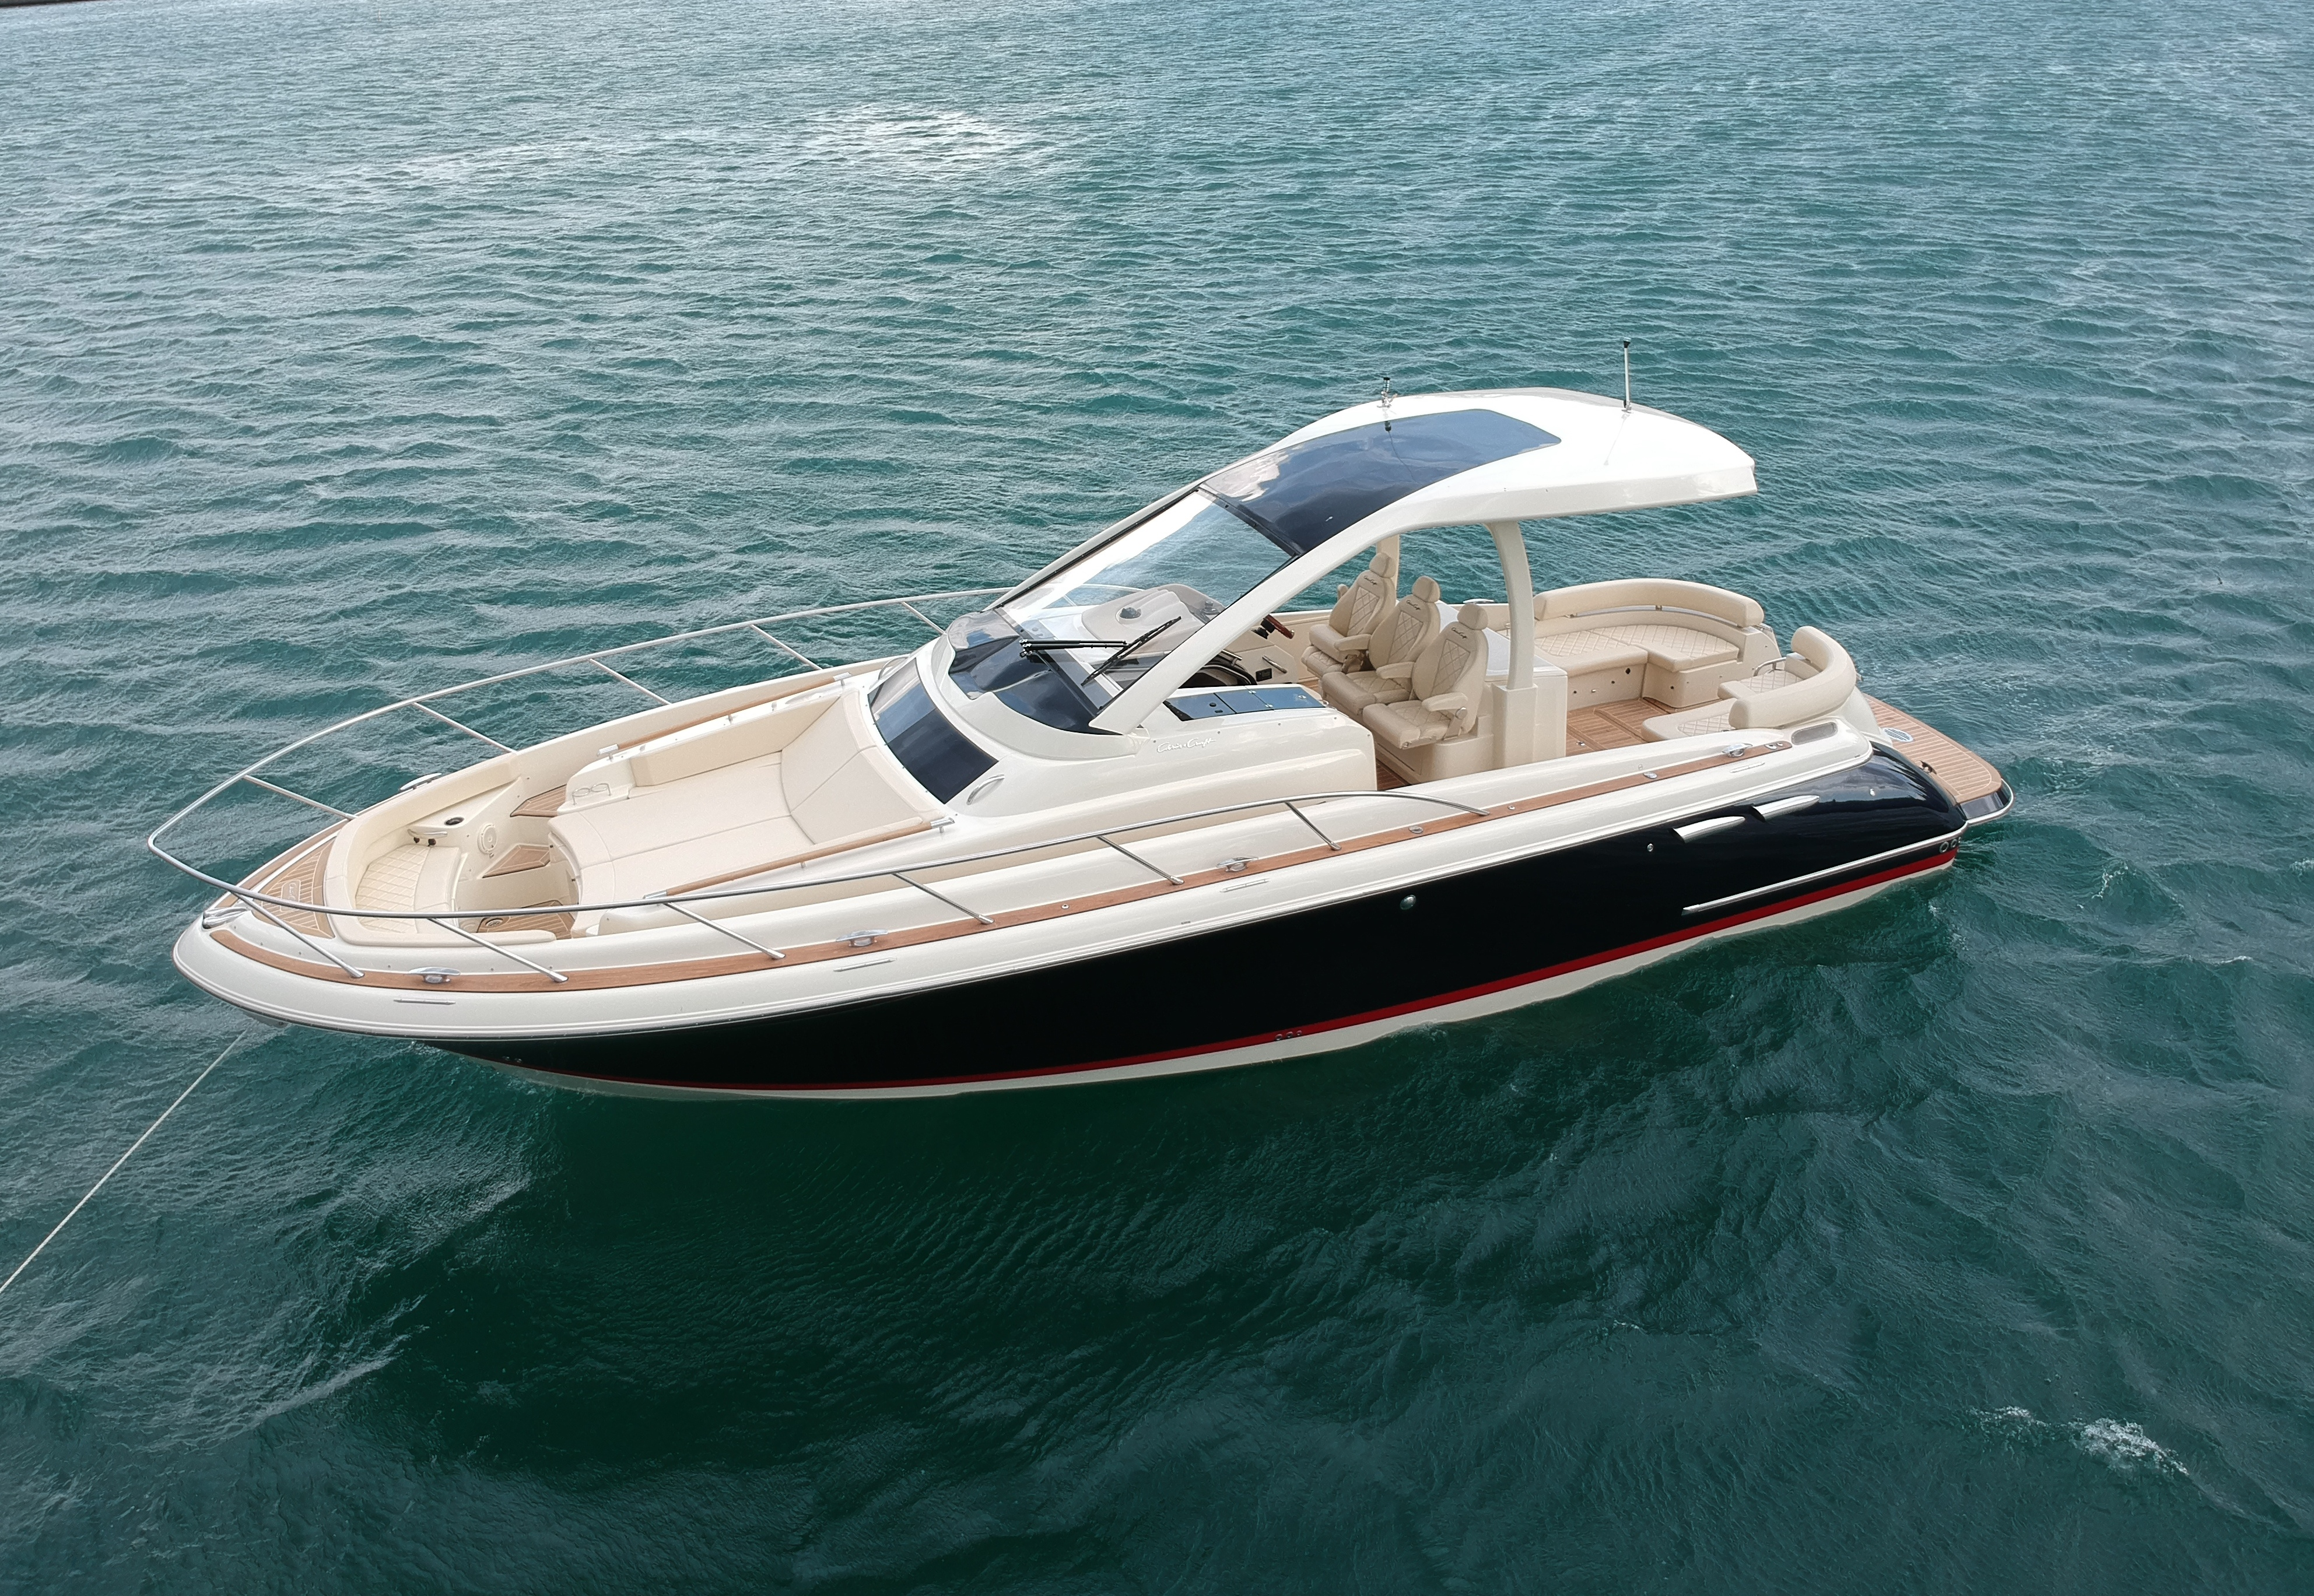 ... wiring diagrams Source · 2019 chris craft launch 38 power boat for sale  www yachtworld com rh yachtworld com 6